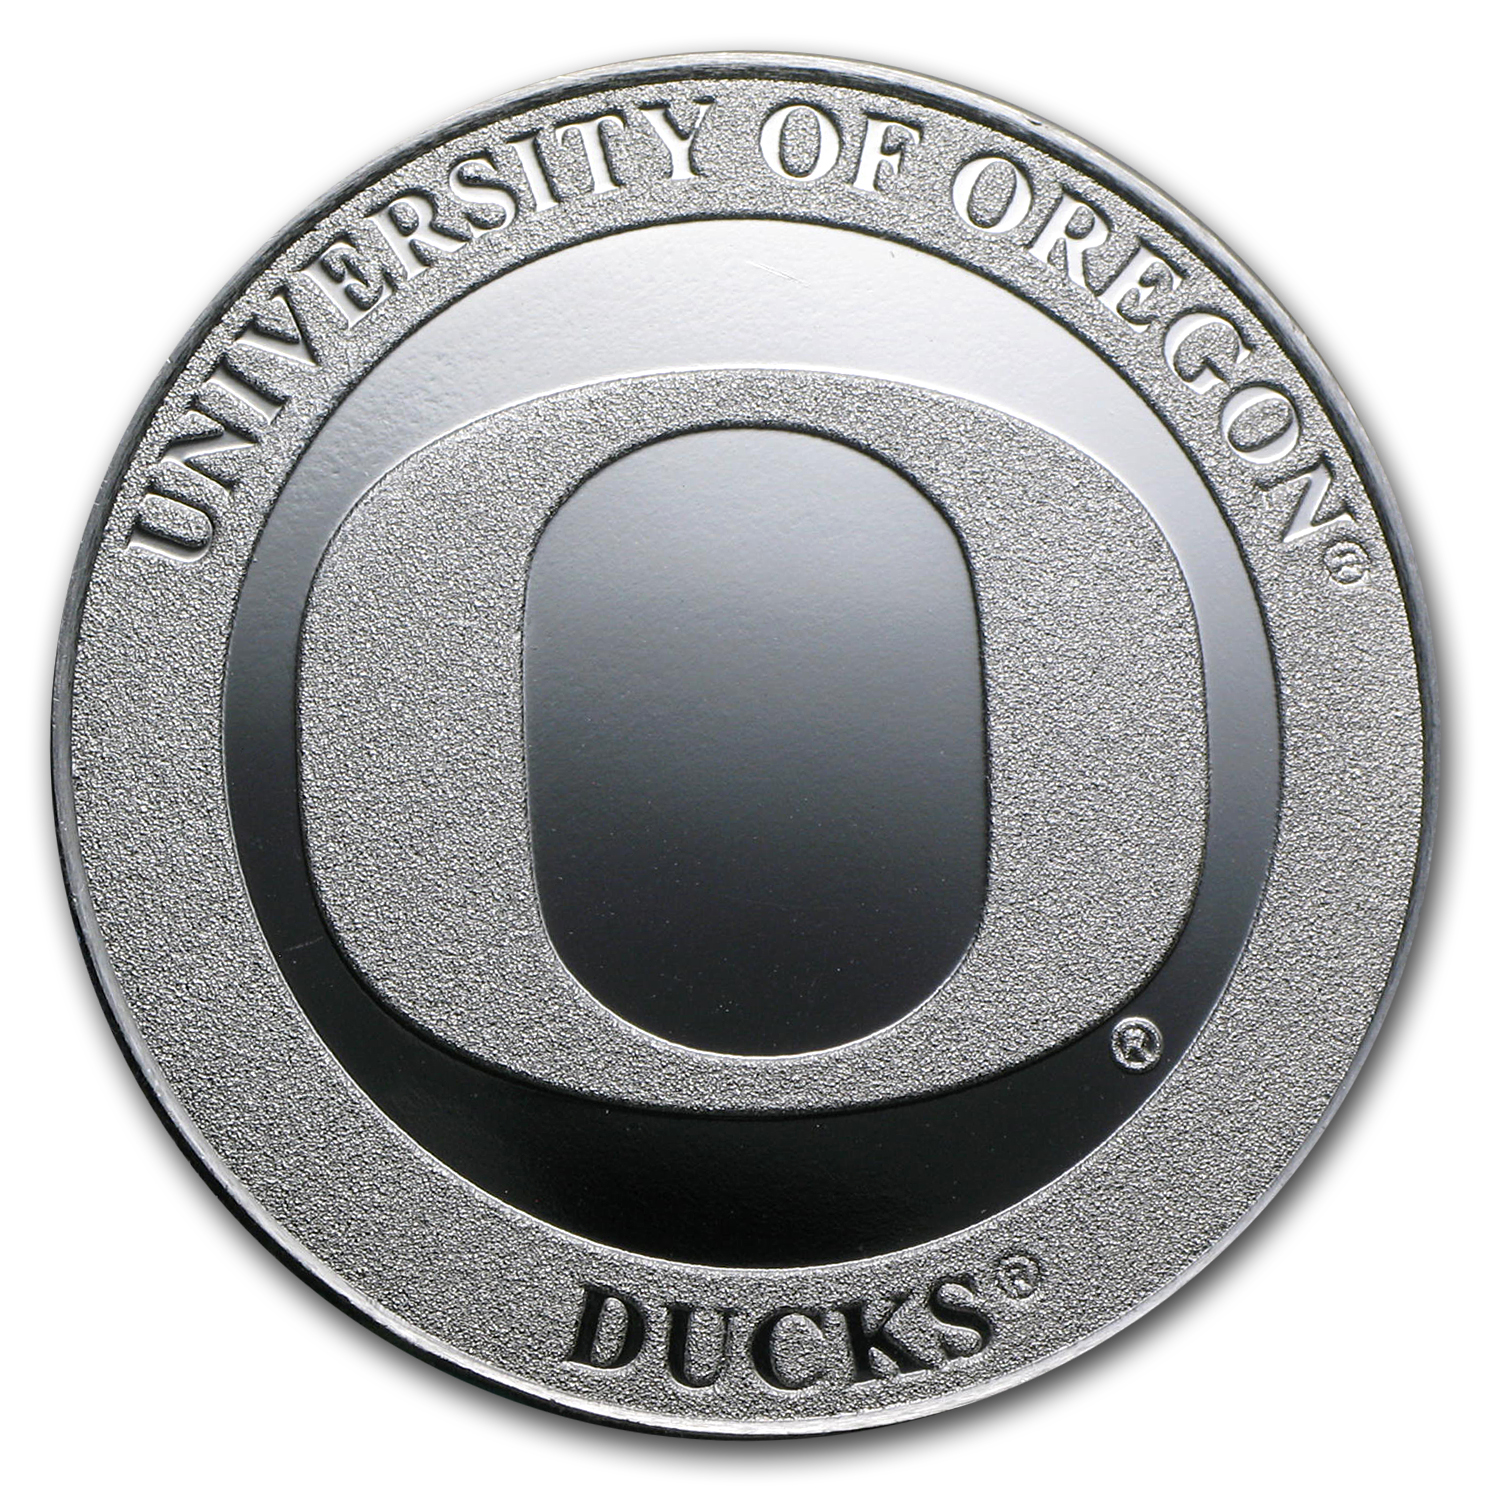 1 oz Silver Round - University of Oregon